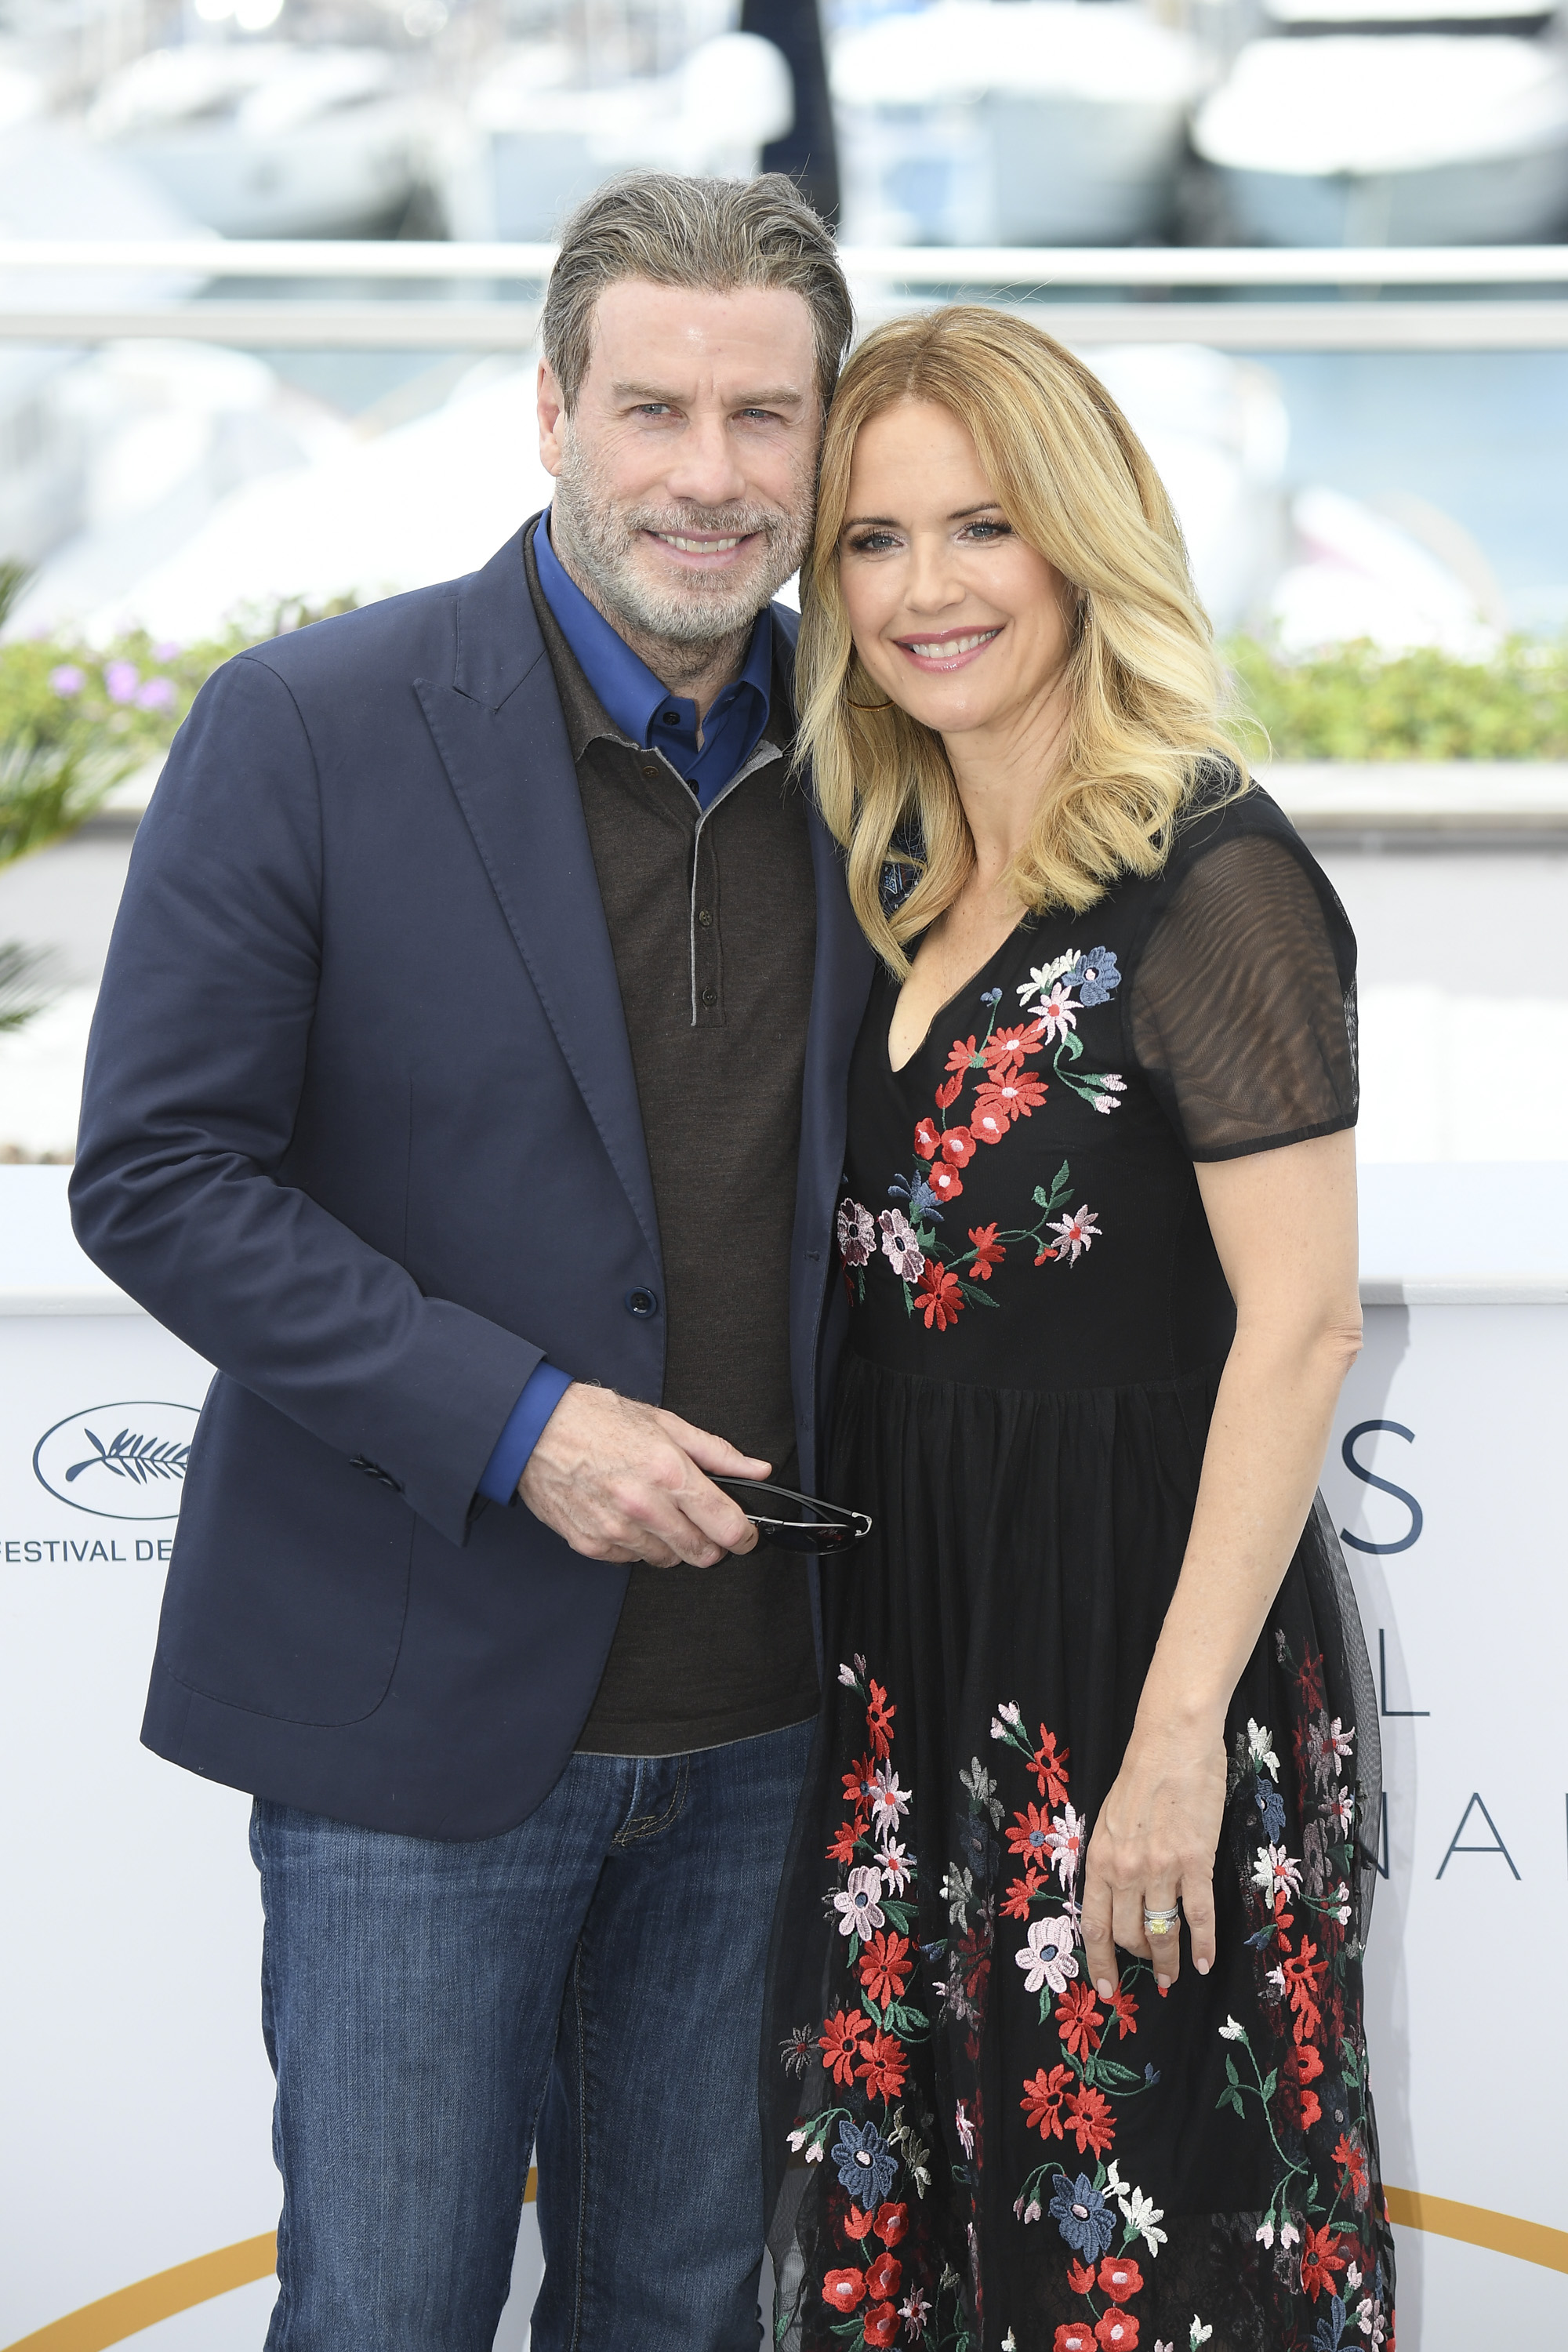 John Travolta and Kelly Preston at the 71st annual Cannes Film Festival at Palais des Festivals on May 15, 2018 in Cannes, France.